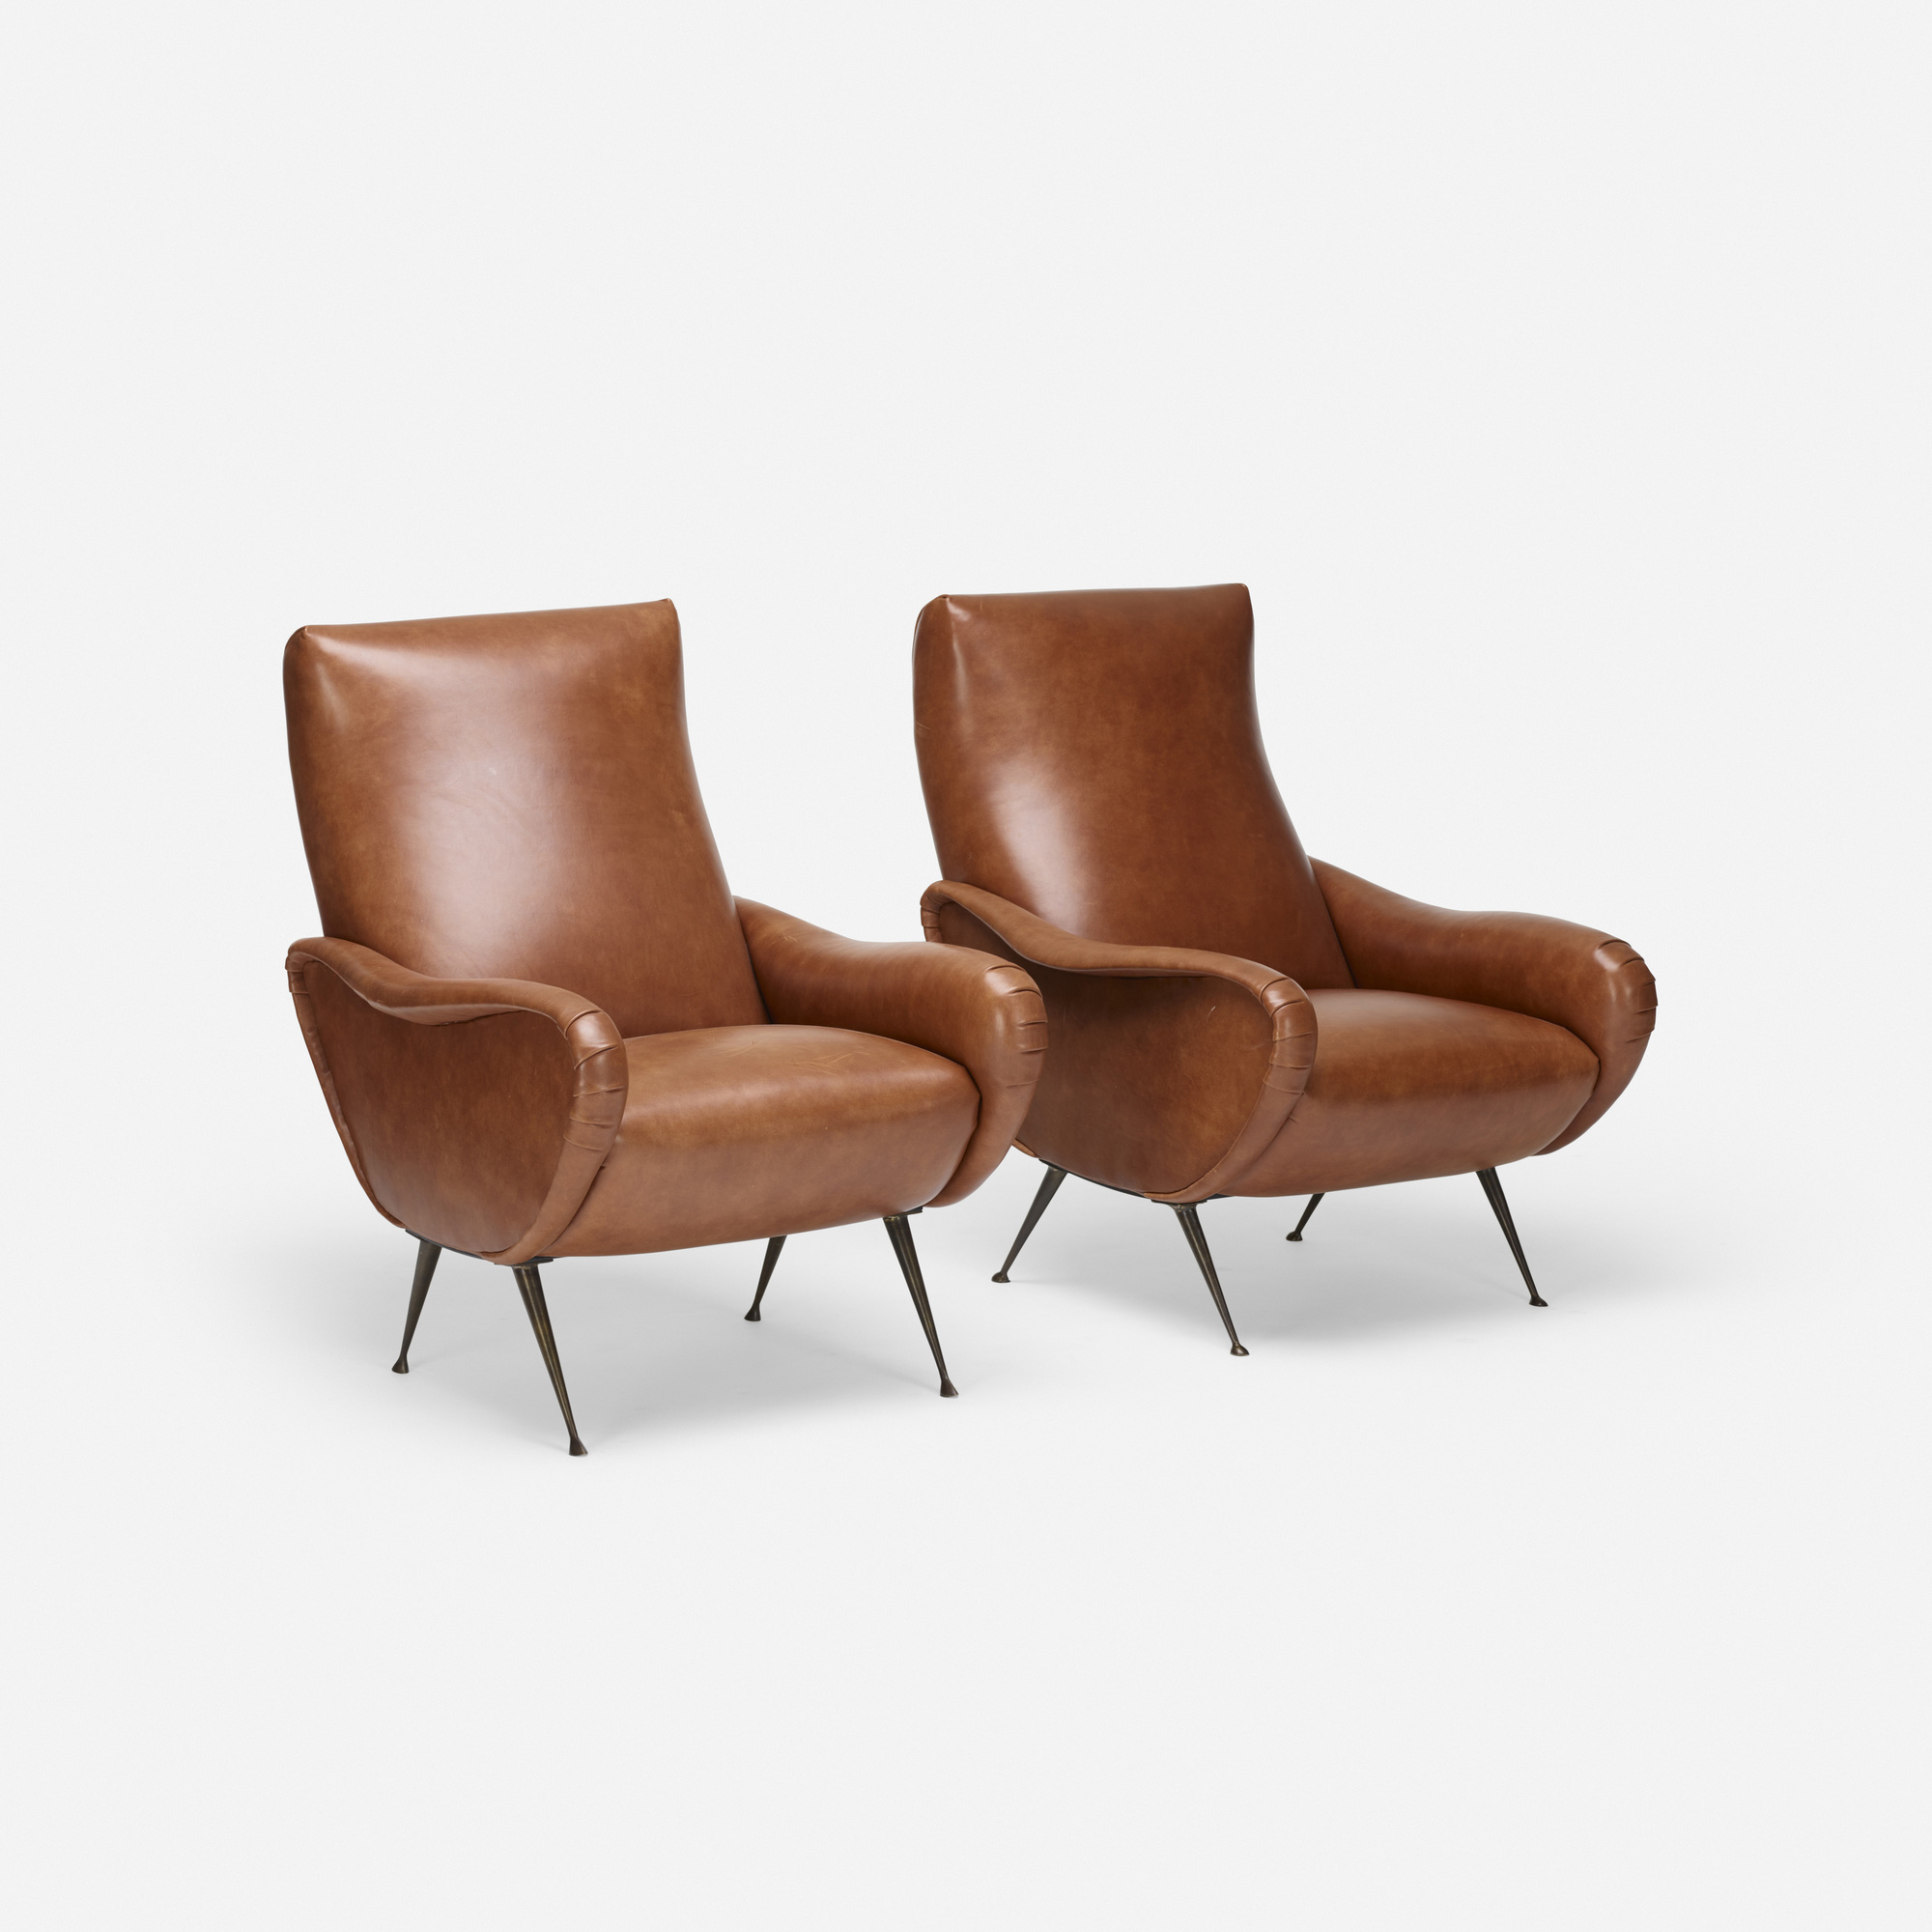 814: In the manner of Marco Zanuso / lounge chairs, pair (2 of 3)